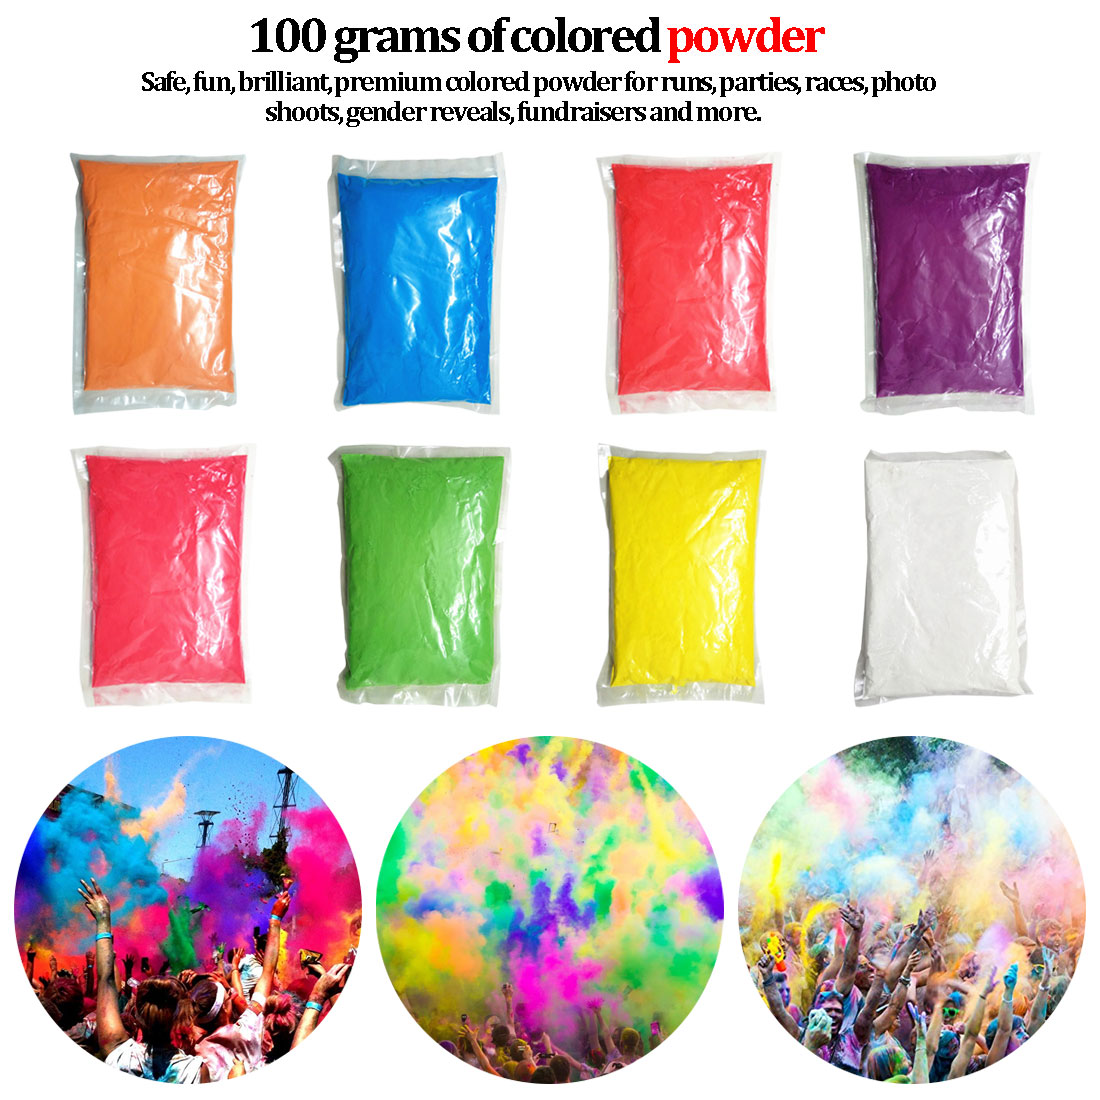 New 100g/bag Colored Powder For Holi Party Novelty Festival Toy Rainbow Running Powder Photobooth Props Solid Color